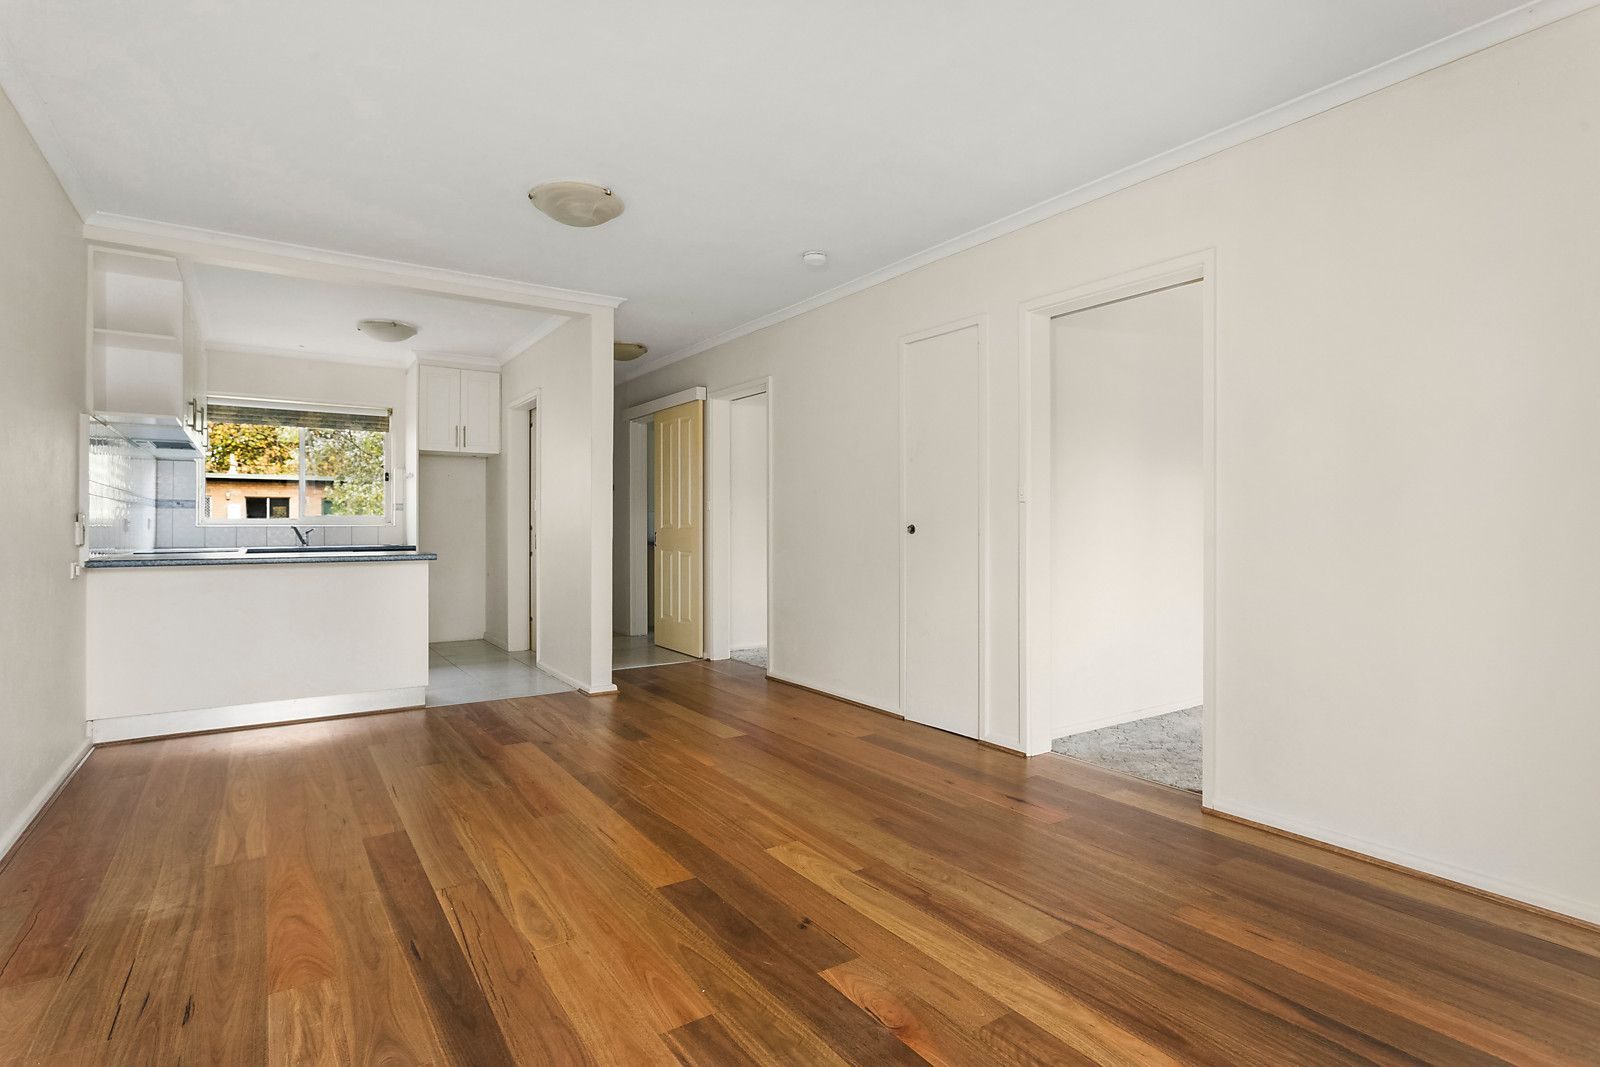 11/37 Haines Street, North Melbourne VIC 3051, Image 0